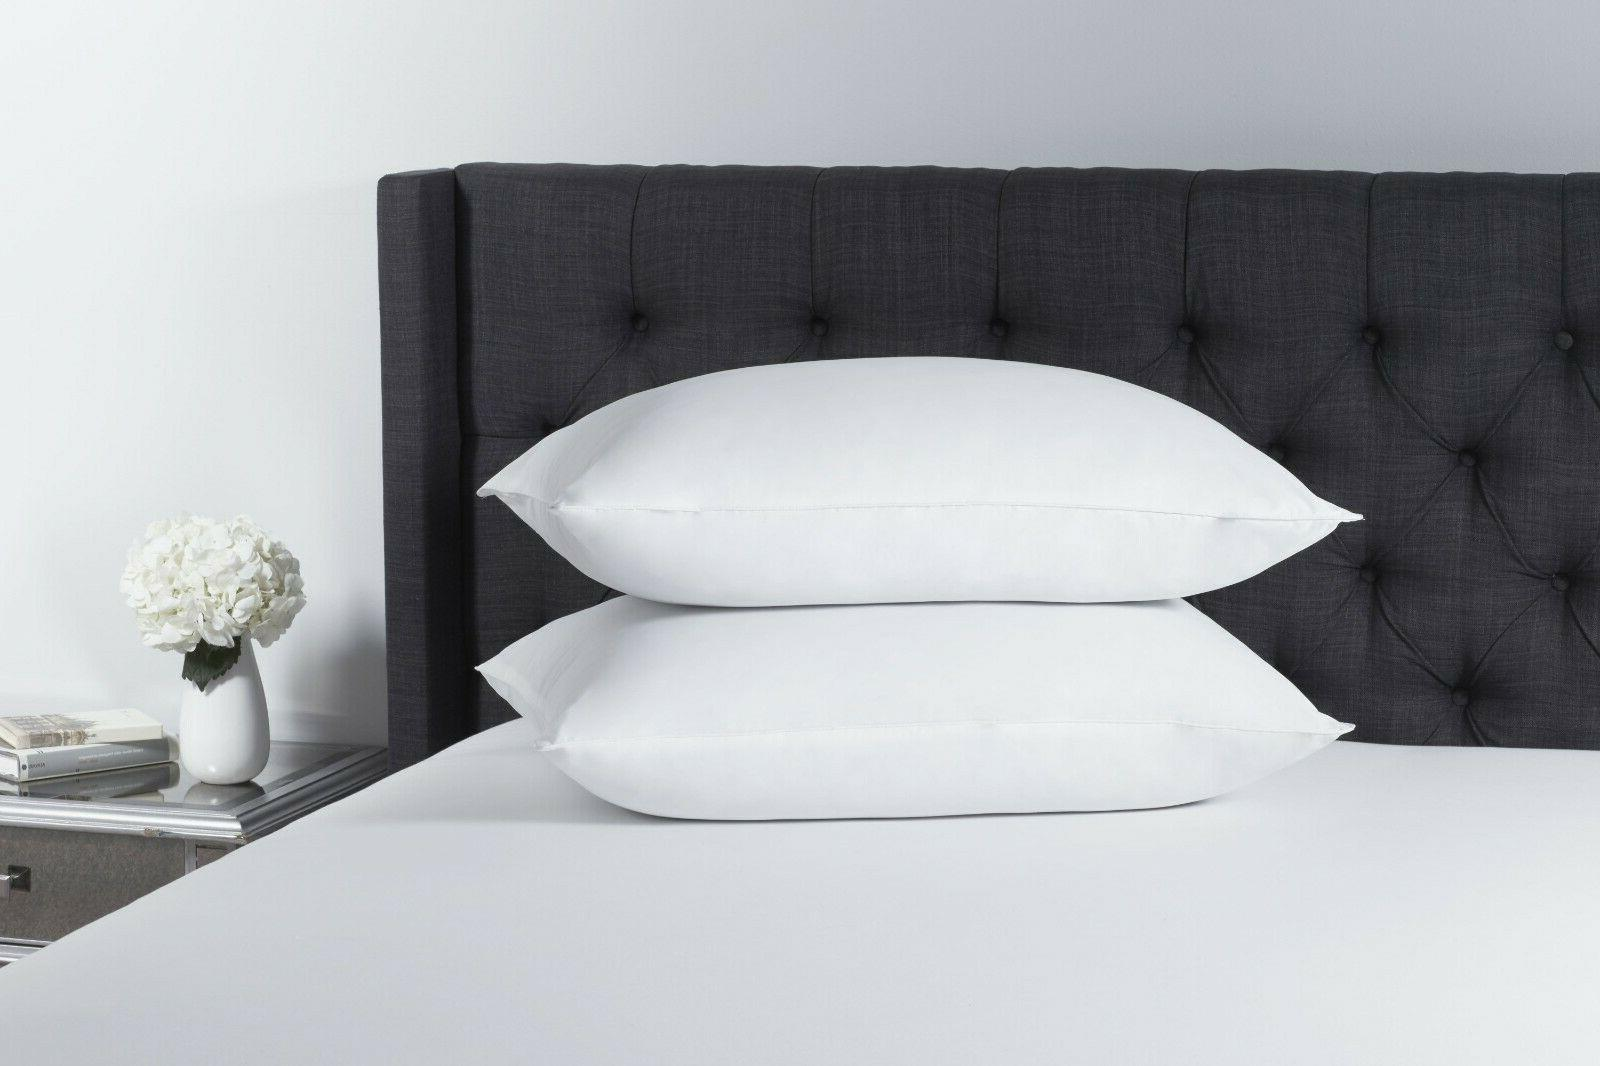 100% Microfiber Hypoallergenic Polyester Pillow Set of 2 Que